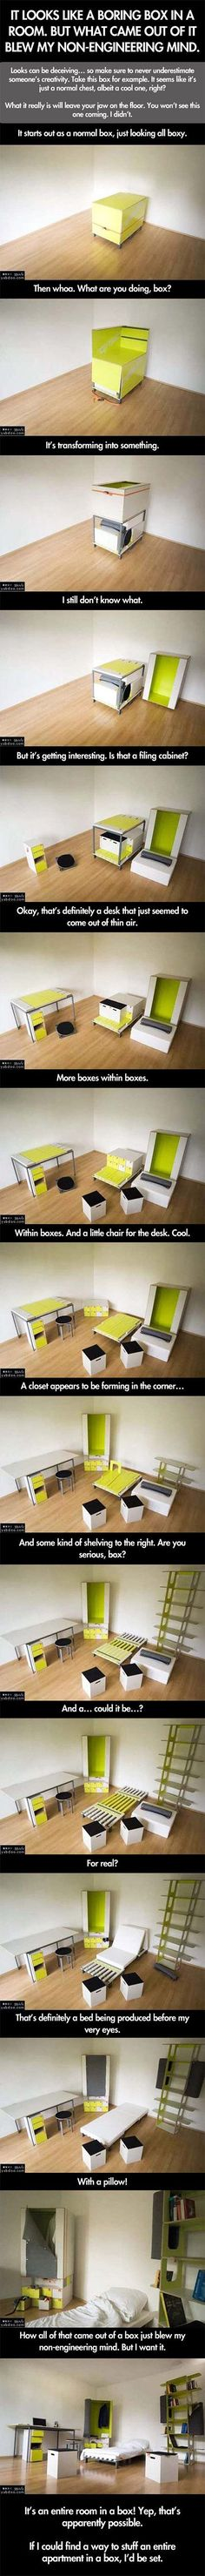 This innovative box is far more than meets the eye. Love it!